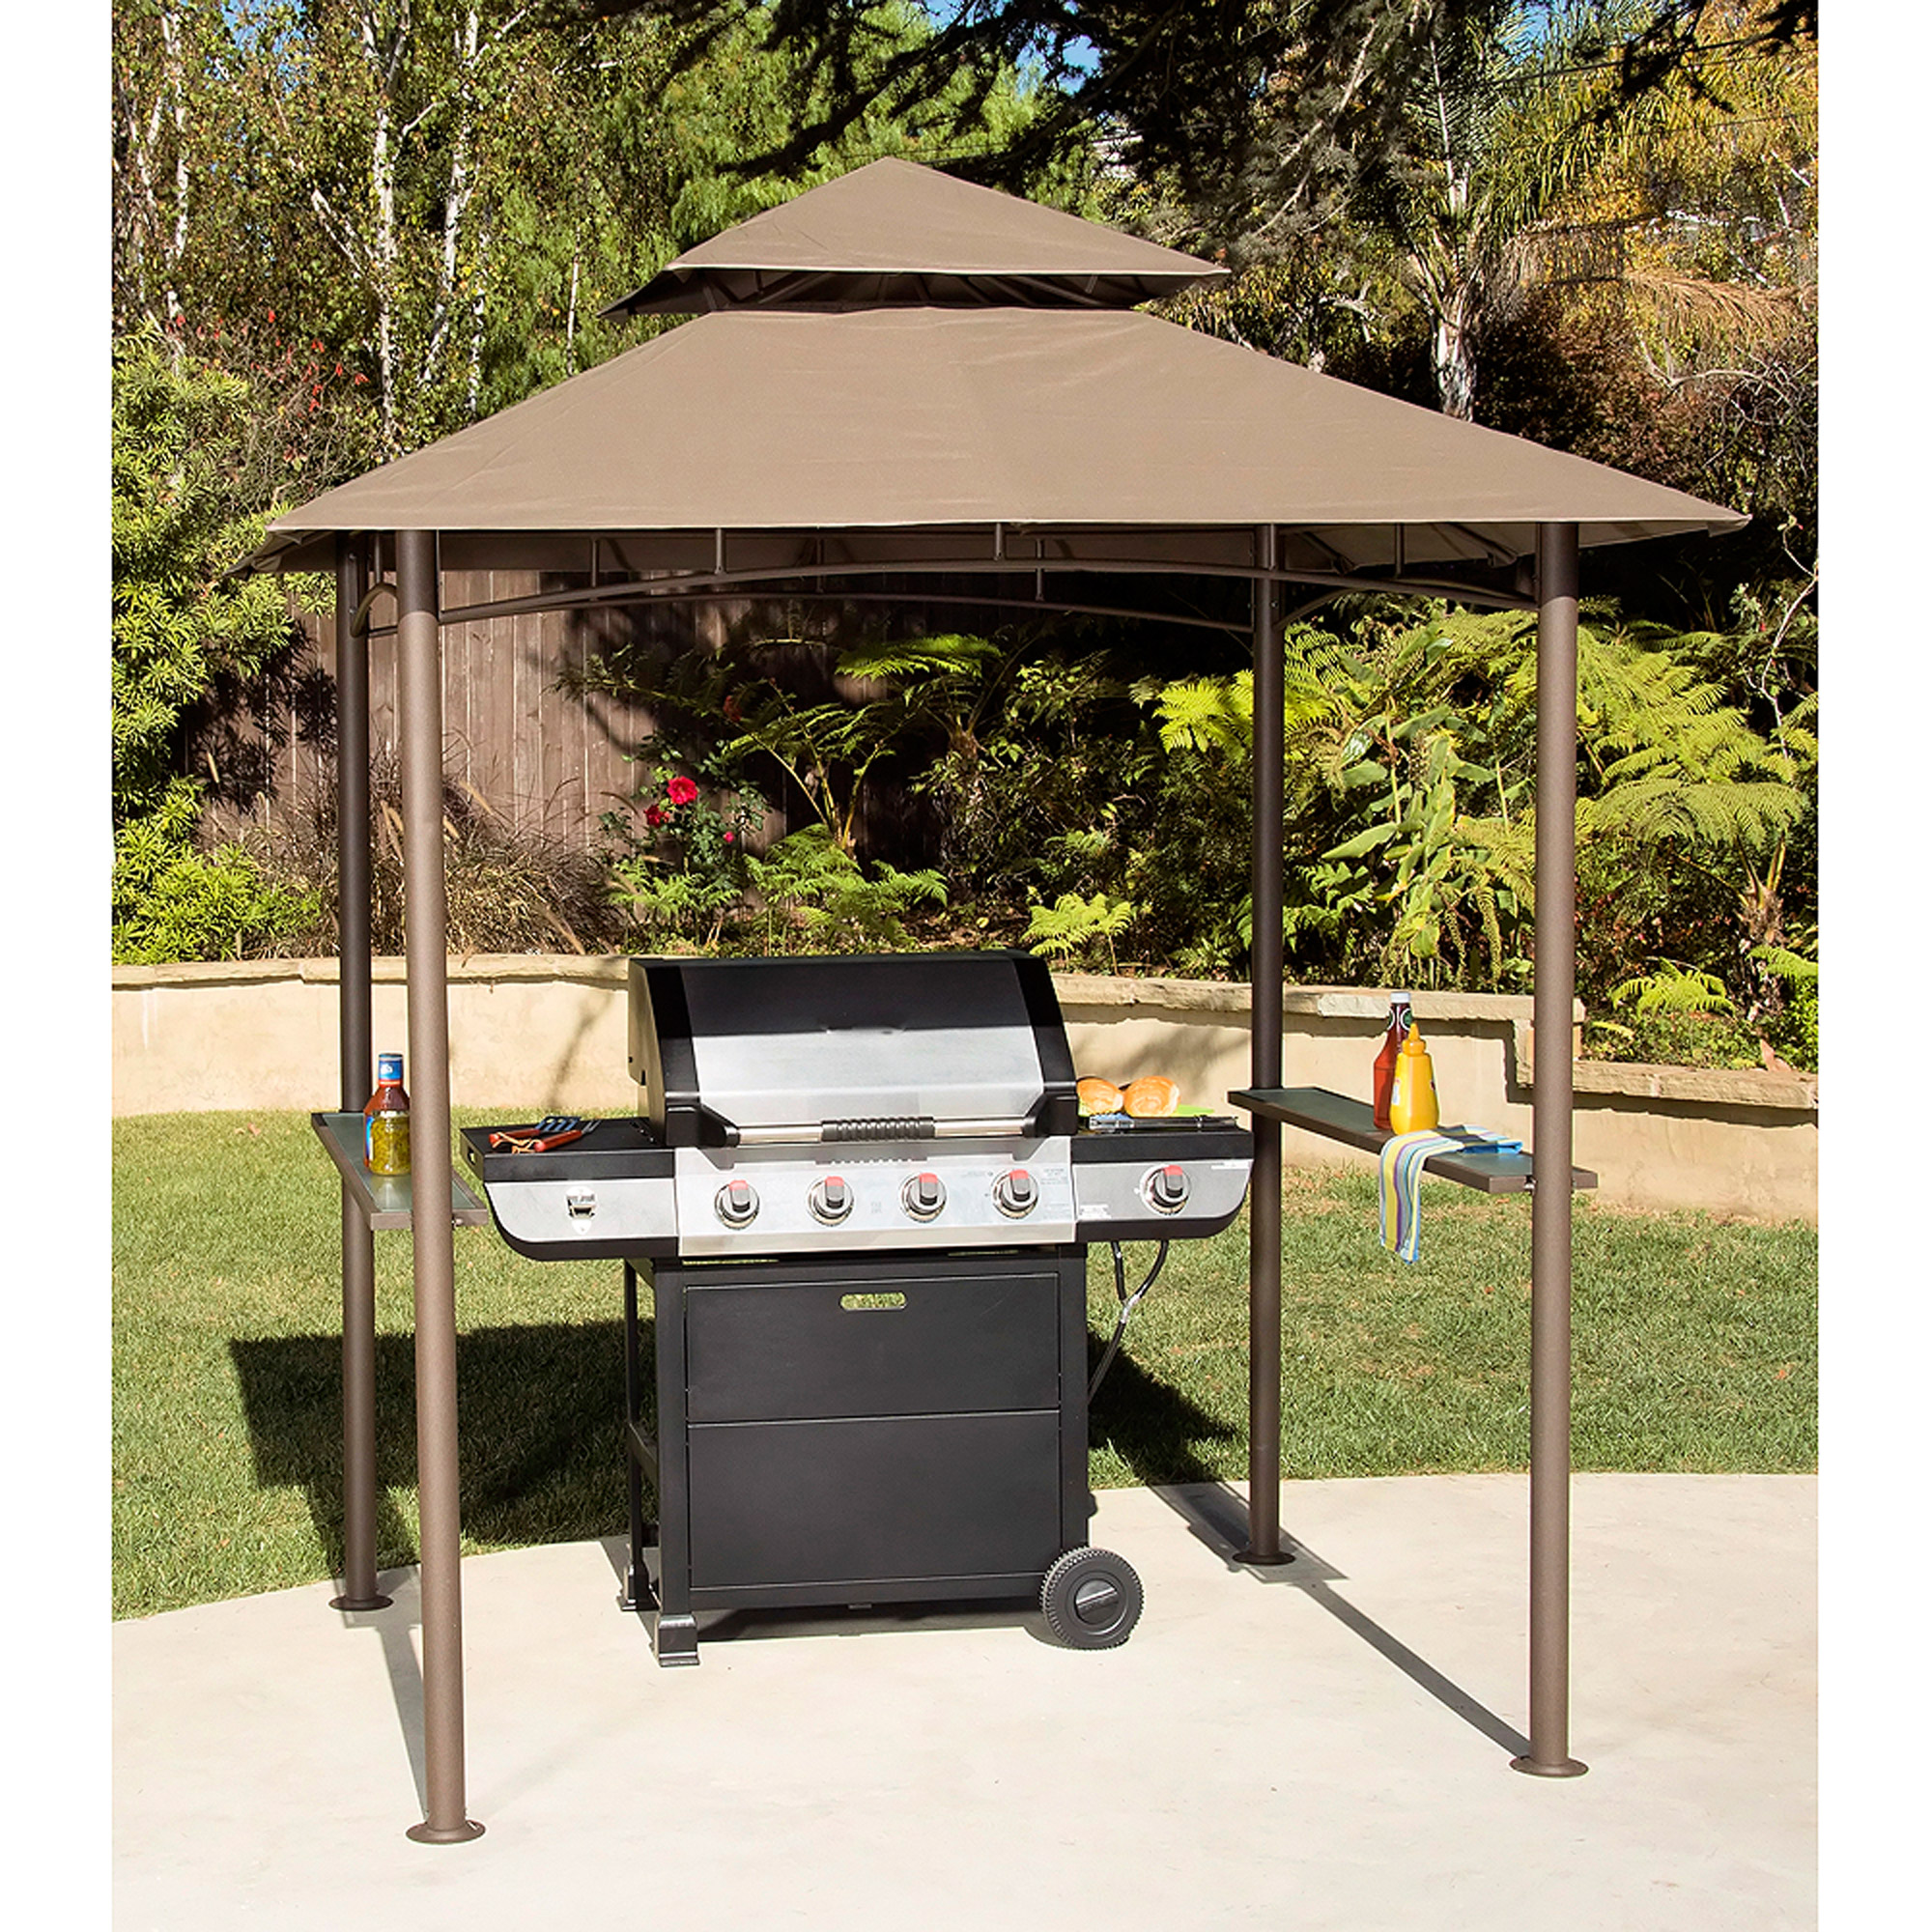 Double Roof Grill Shelter Gazebo ... & Double Roof Grill Shelter Gazebo 8u0027 x 5u0027 - Walmart.com